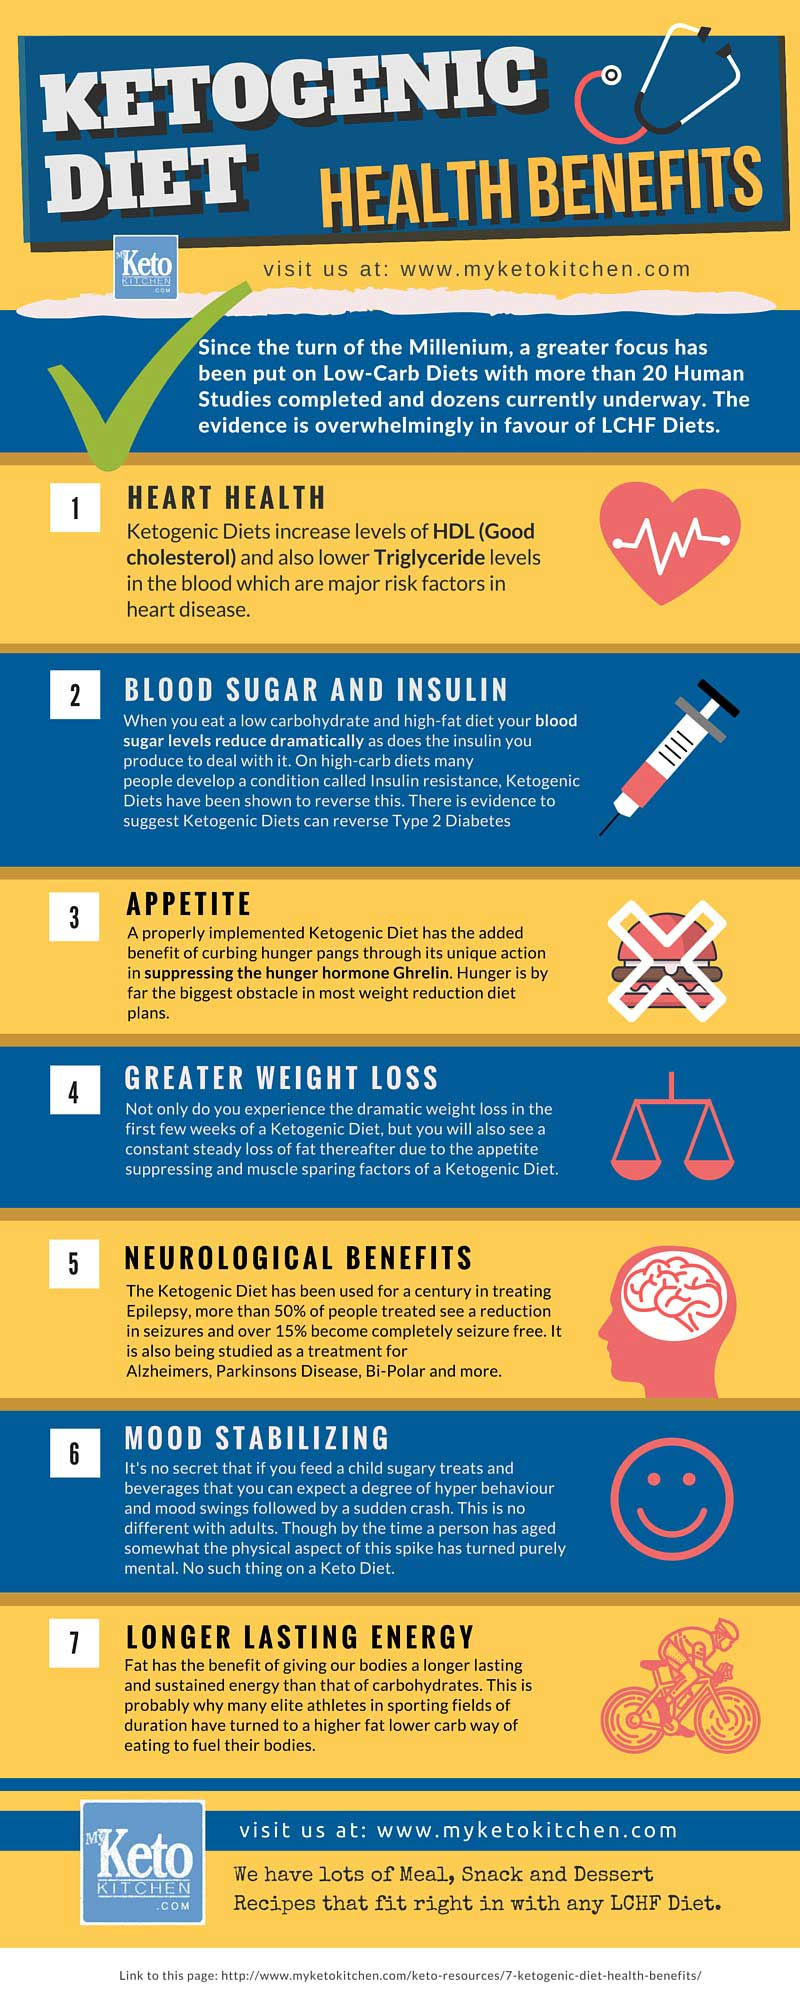 Ketogenic Diet Health Benefits infographic